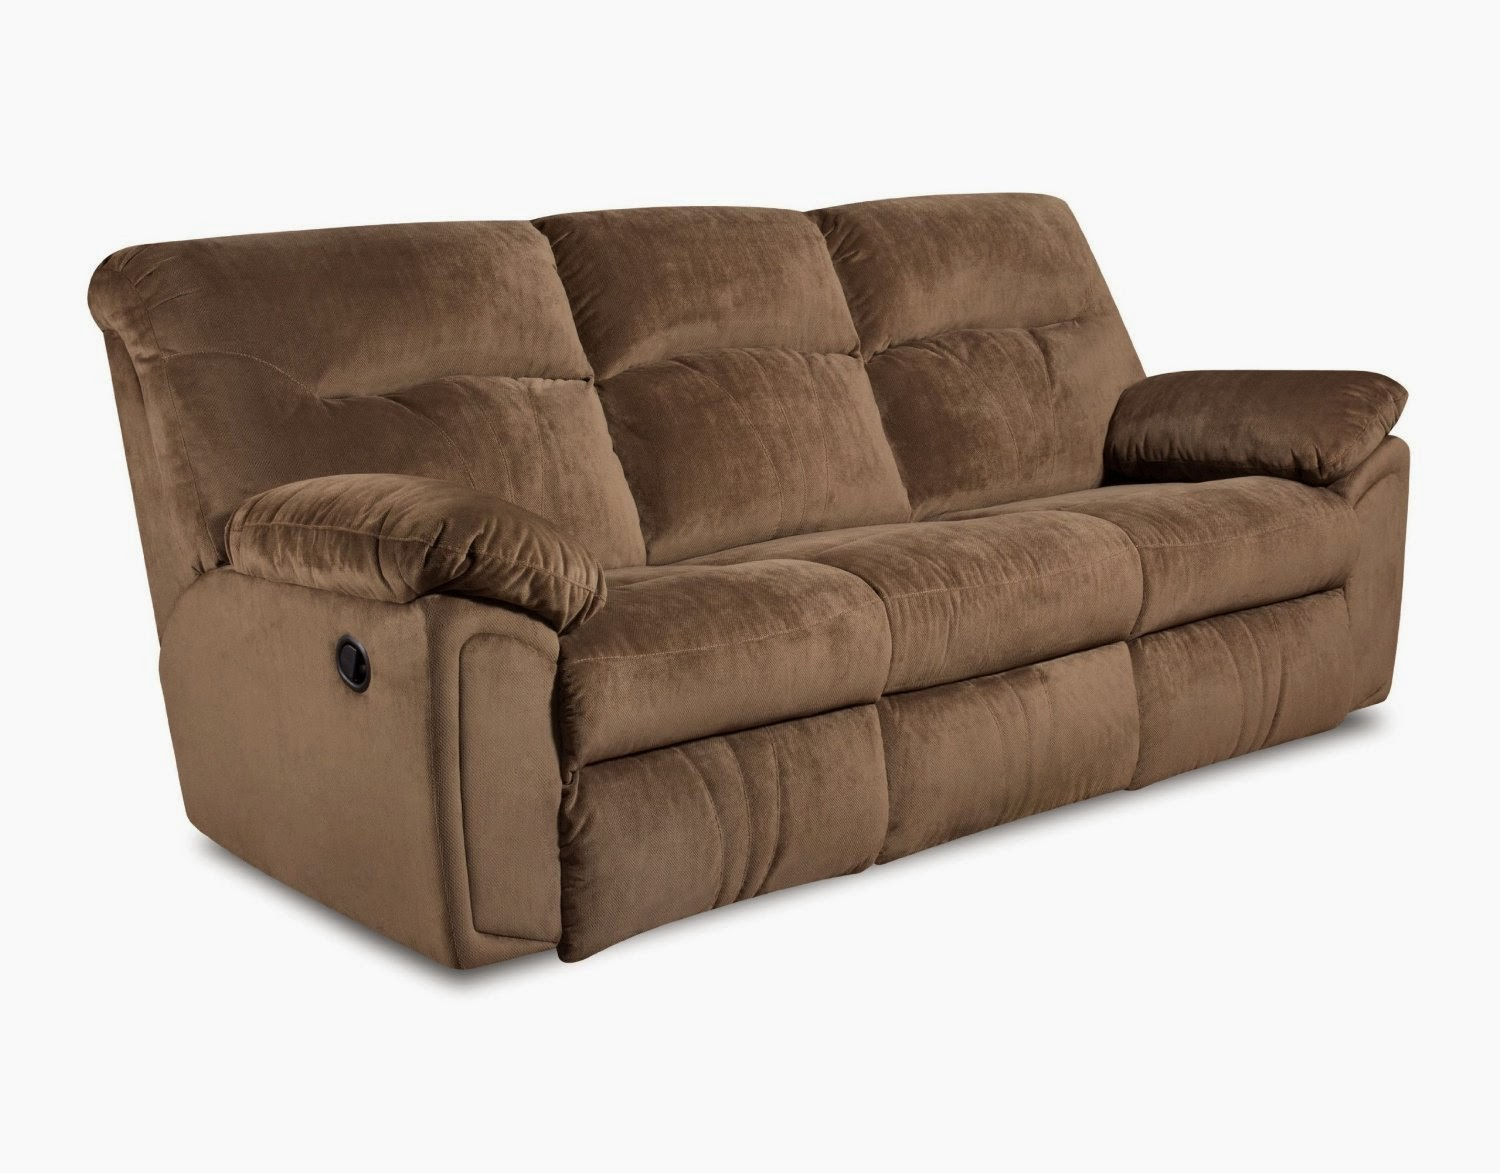 Reclining sofa loveseat and chair sets southern motion reclining leather sofa Leather loveseat recliners